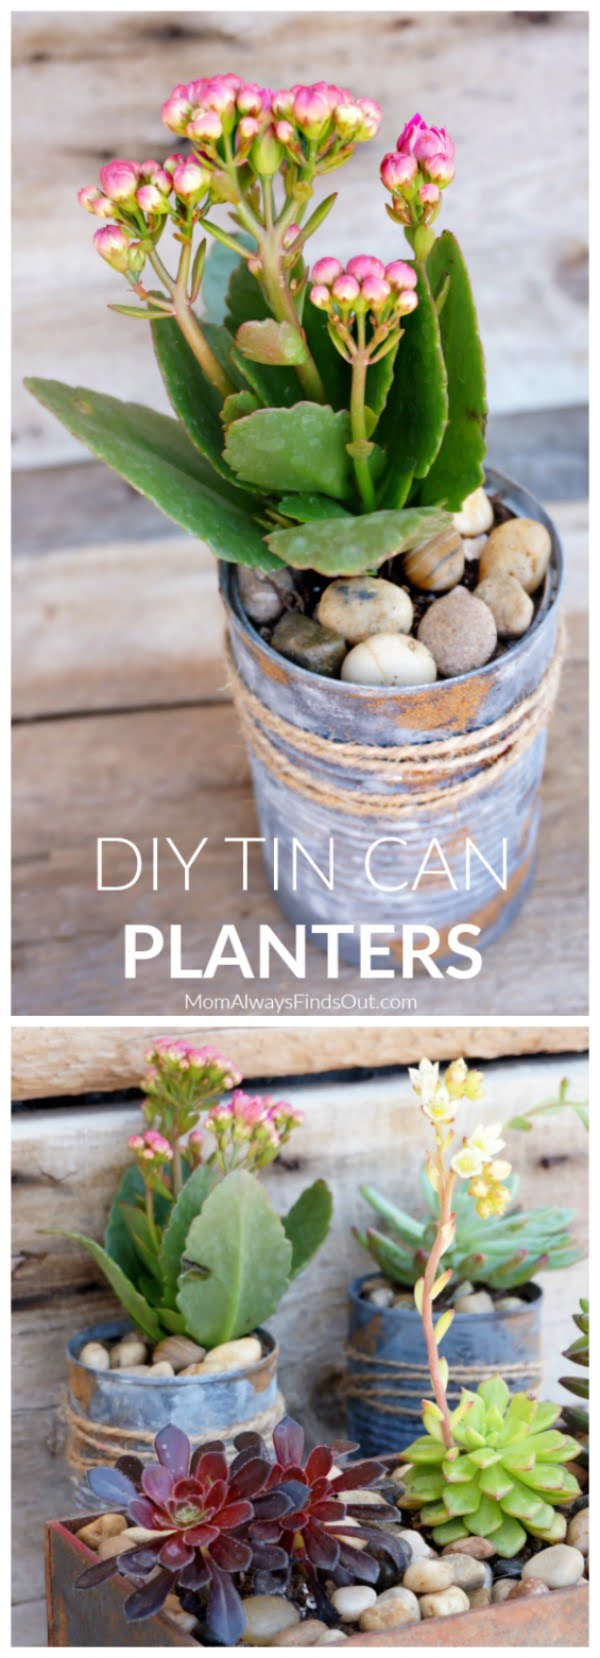 DIY Tin Can Planters Perfect For Succulents, Small Plants, and Flowers #DIY #homedecor #tincan #crafts #repurpose #upcycle